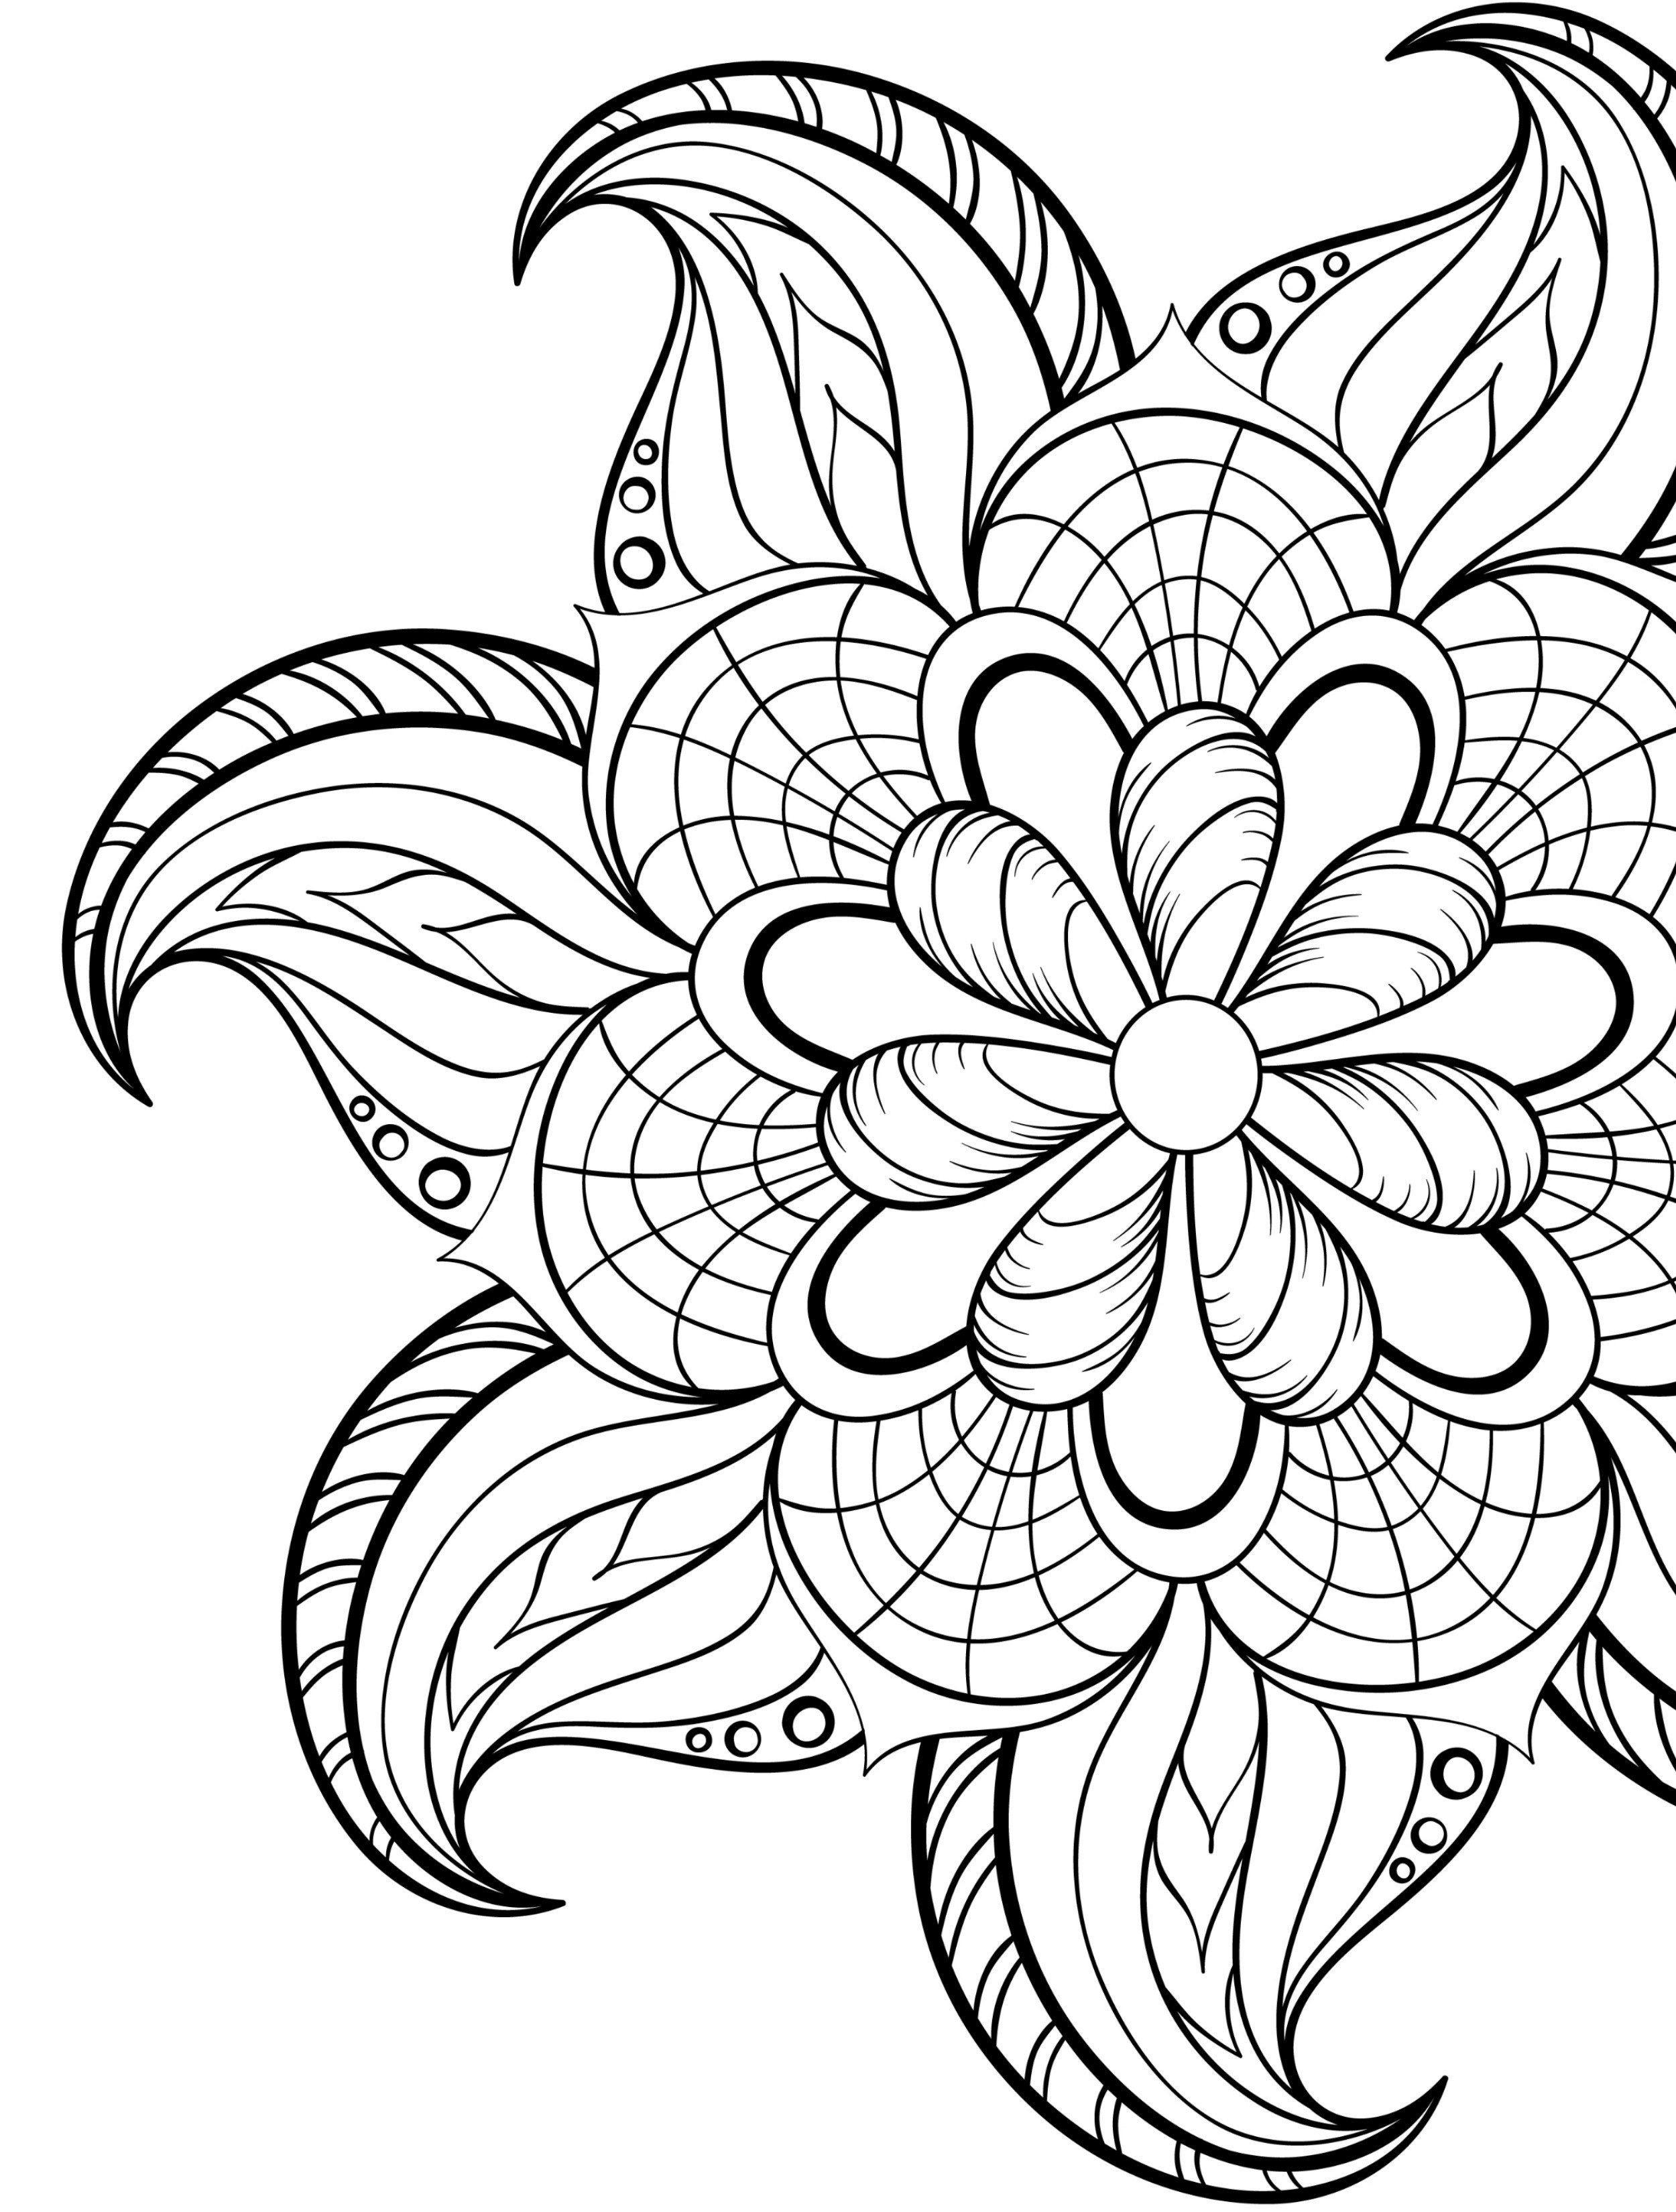 coloring pages to print # 45